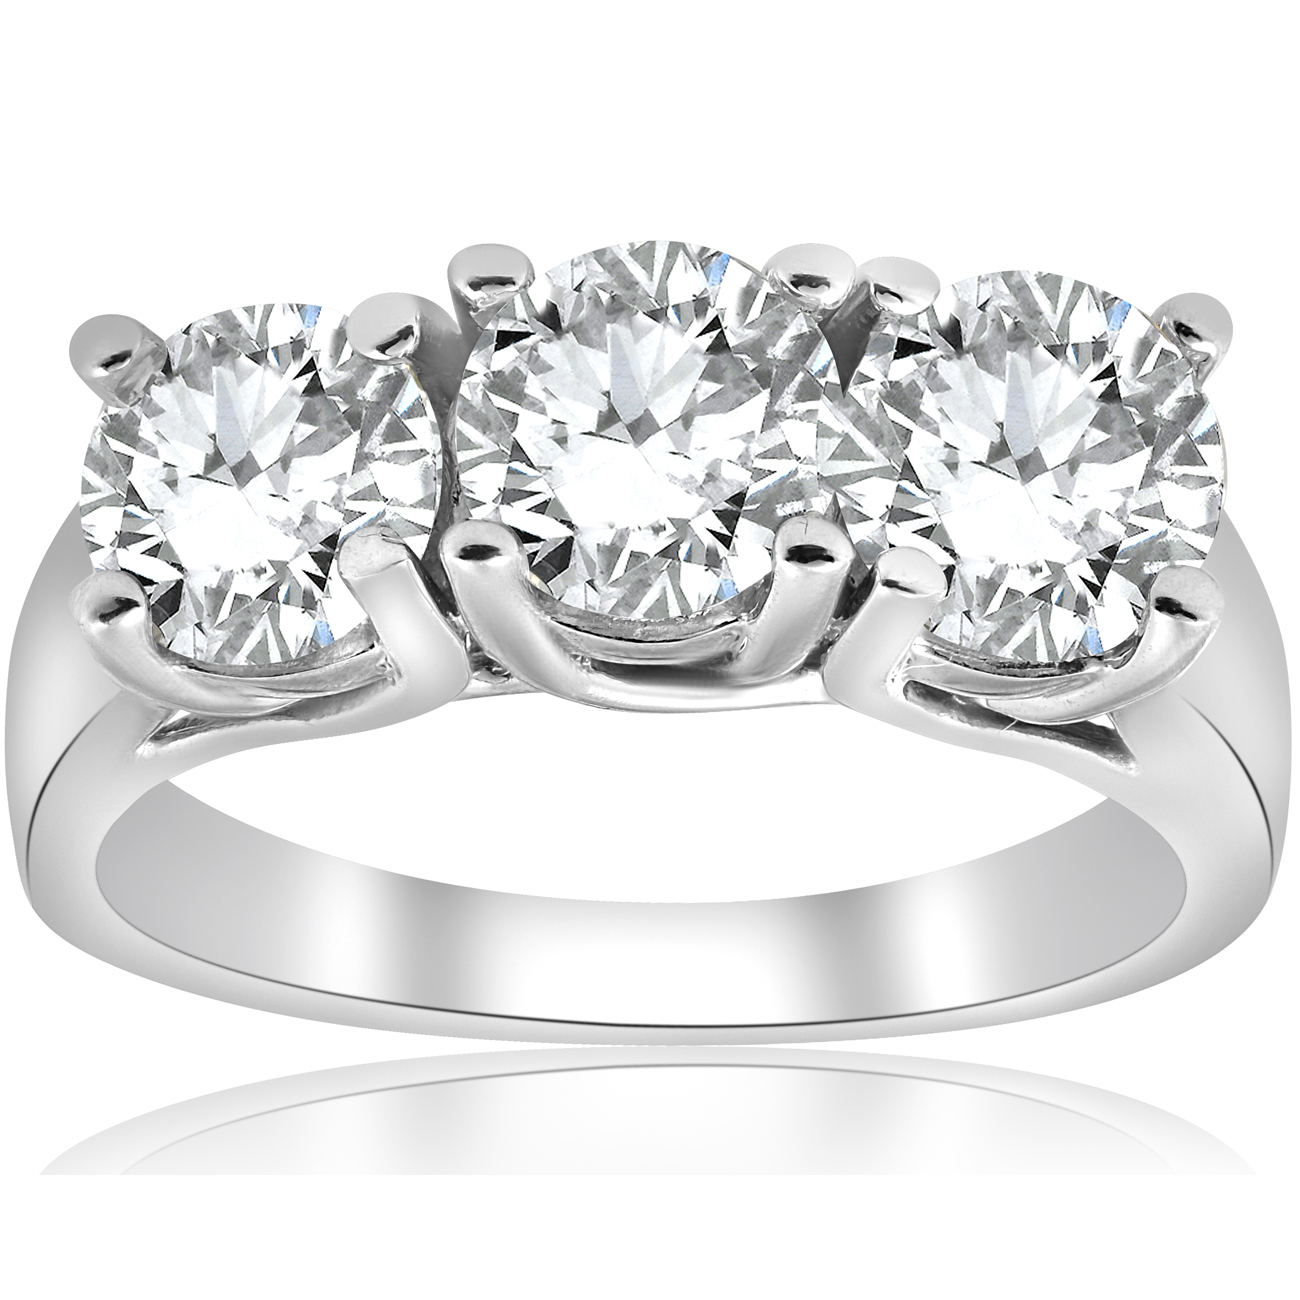 Featured Photo of Enhanced Black And White Diamond Anniversary Ring In White Gold